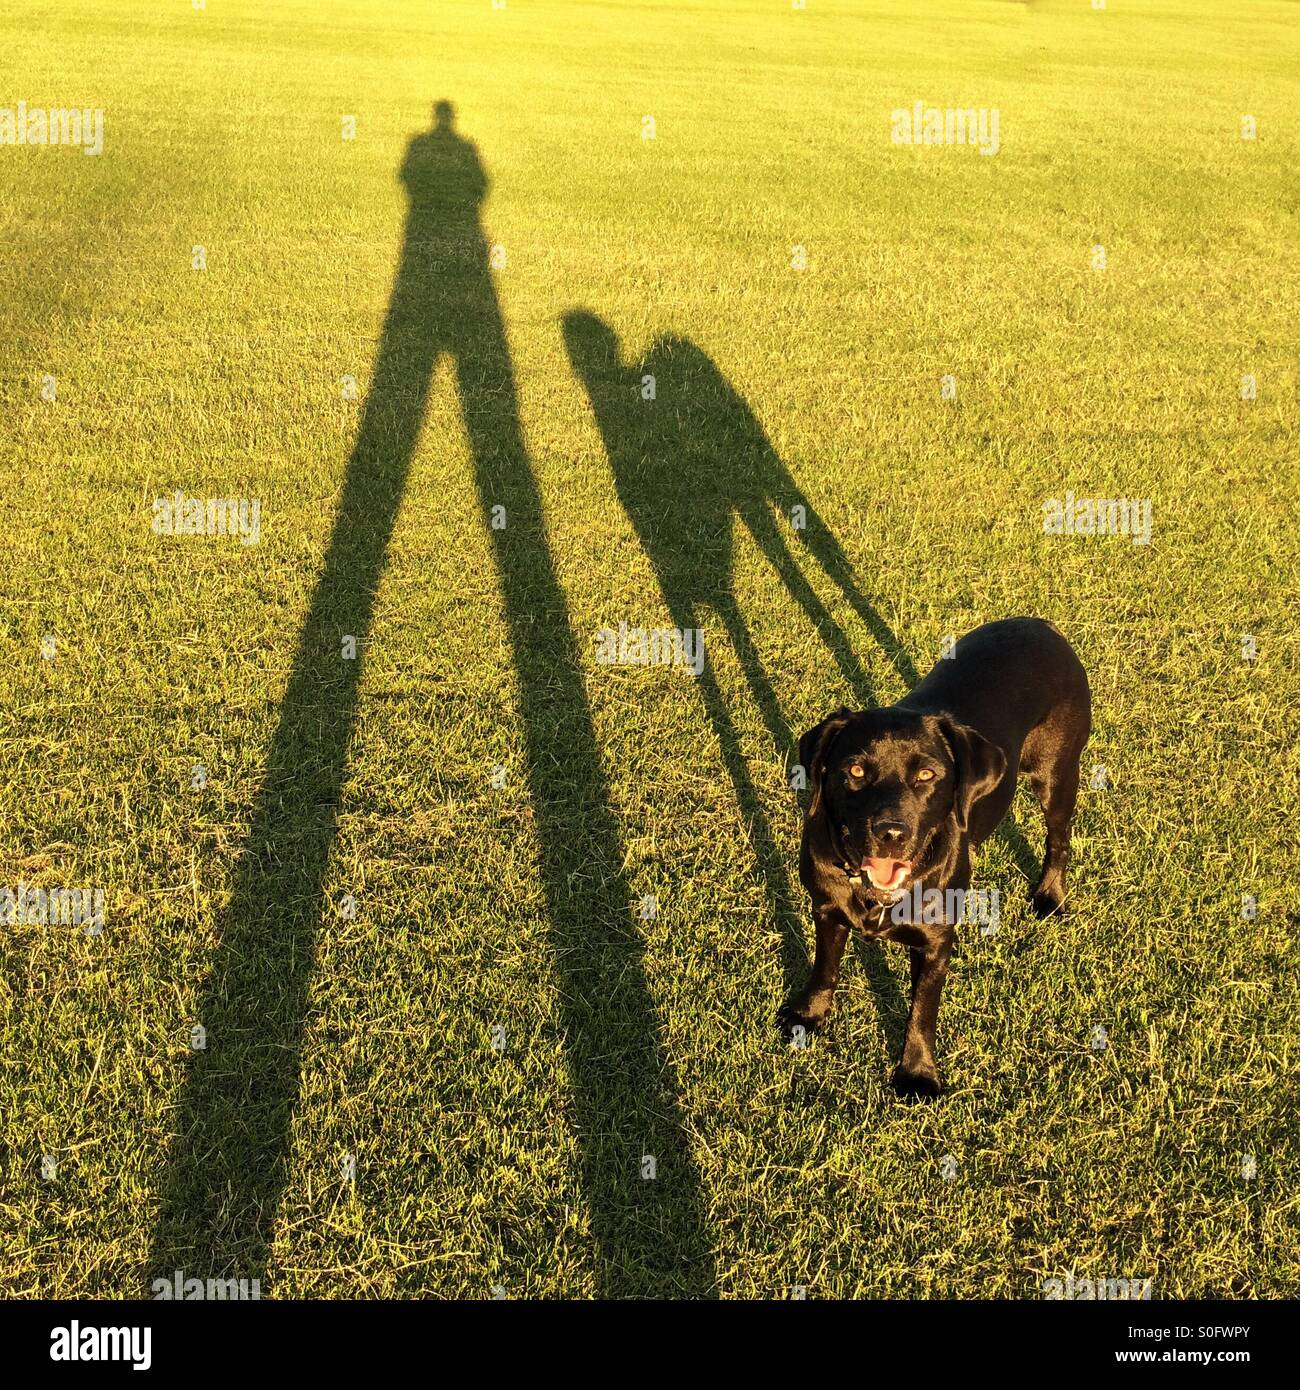 Long shadows of man and dog - Stock Image